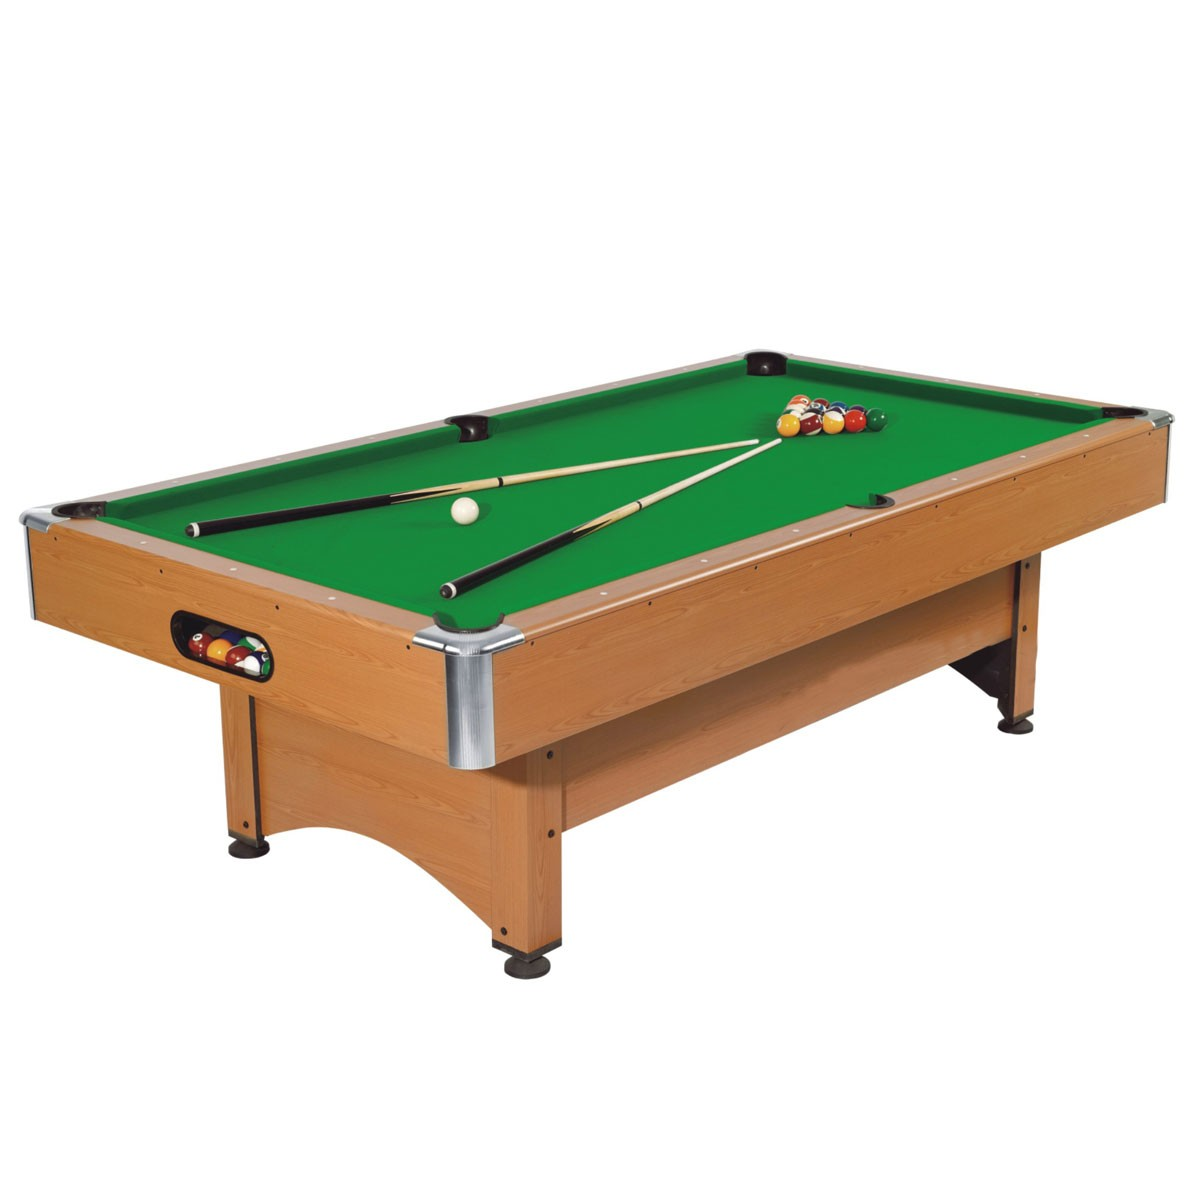 8-Foot Pool Table with Accessories (ZLB-P03)